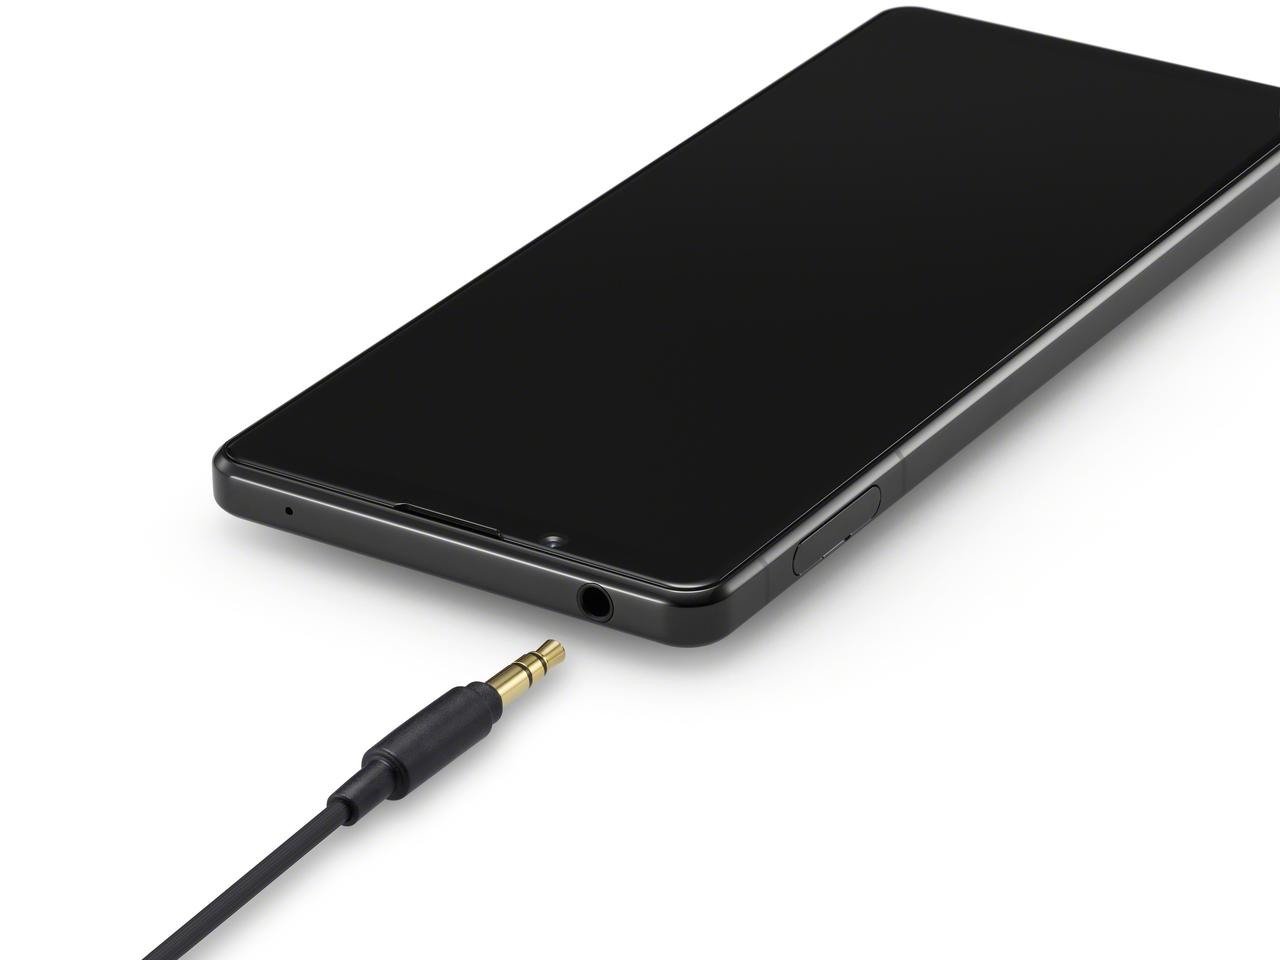 Sony has included a 3.5 mm audio jack in the design of the Xperia 1 II